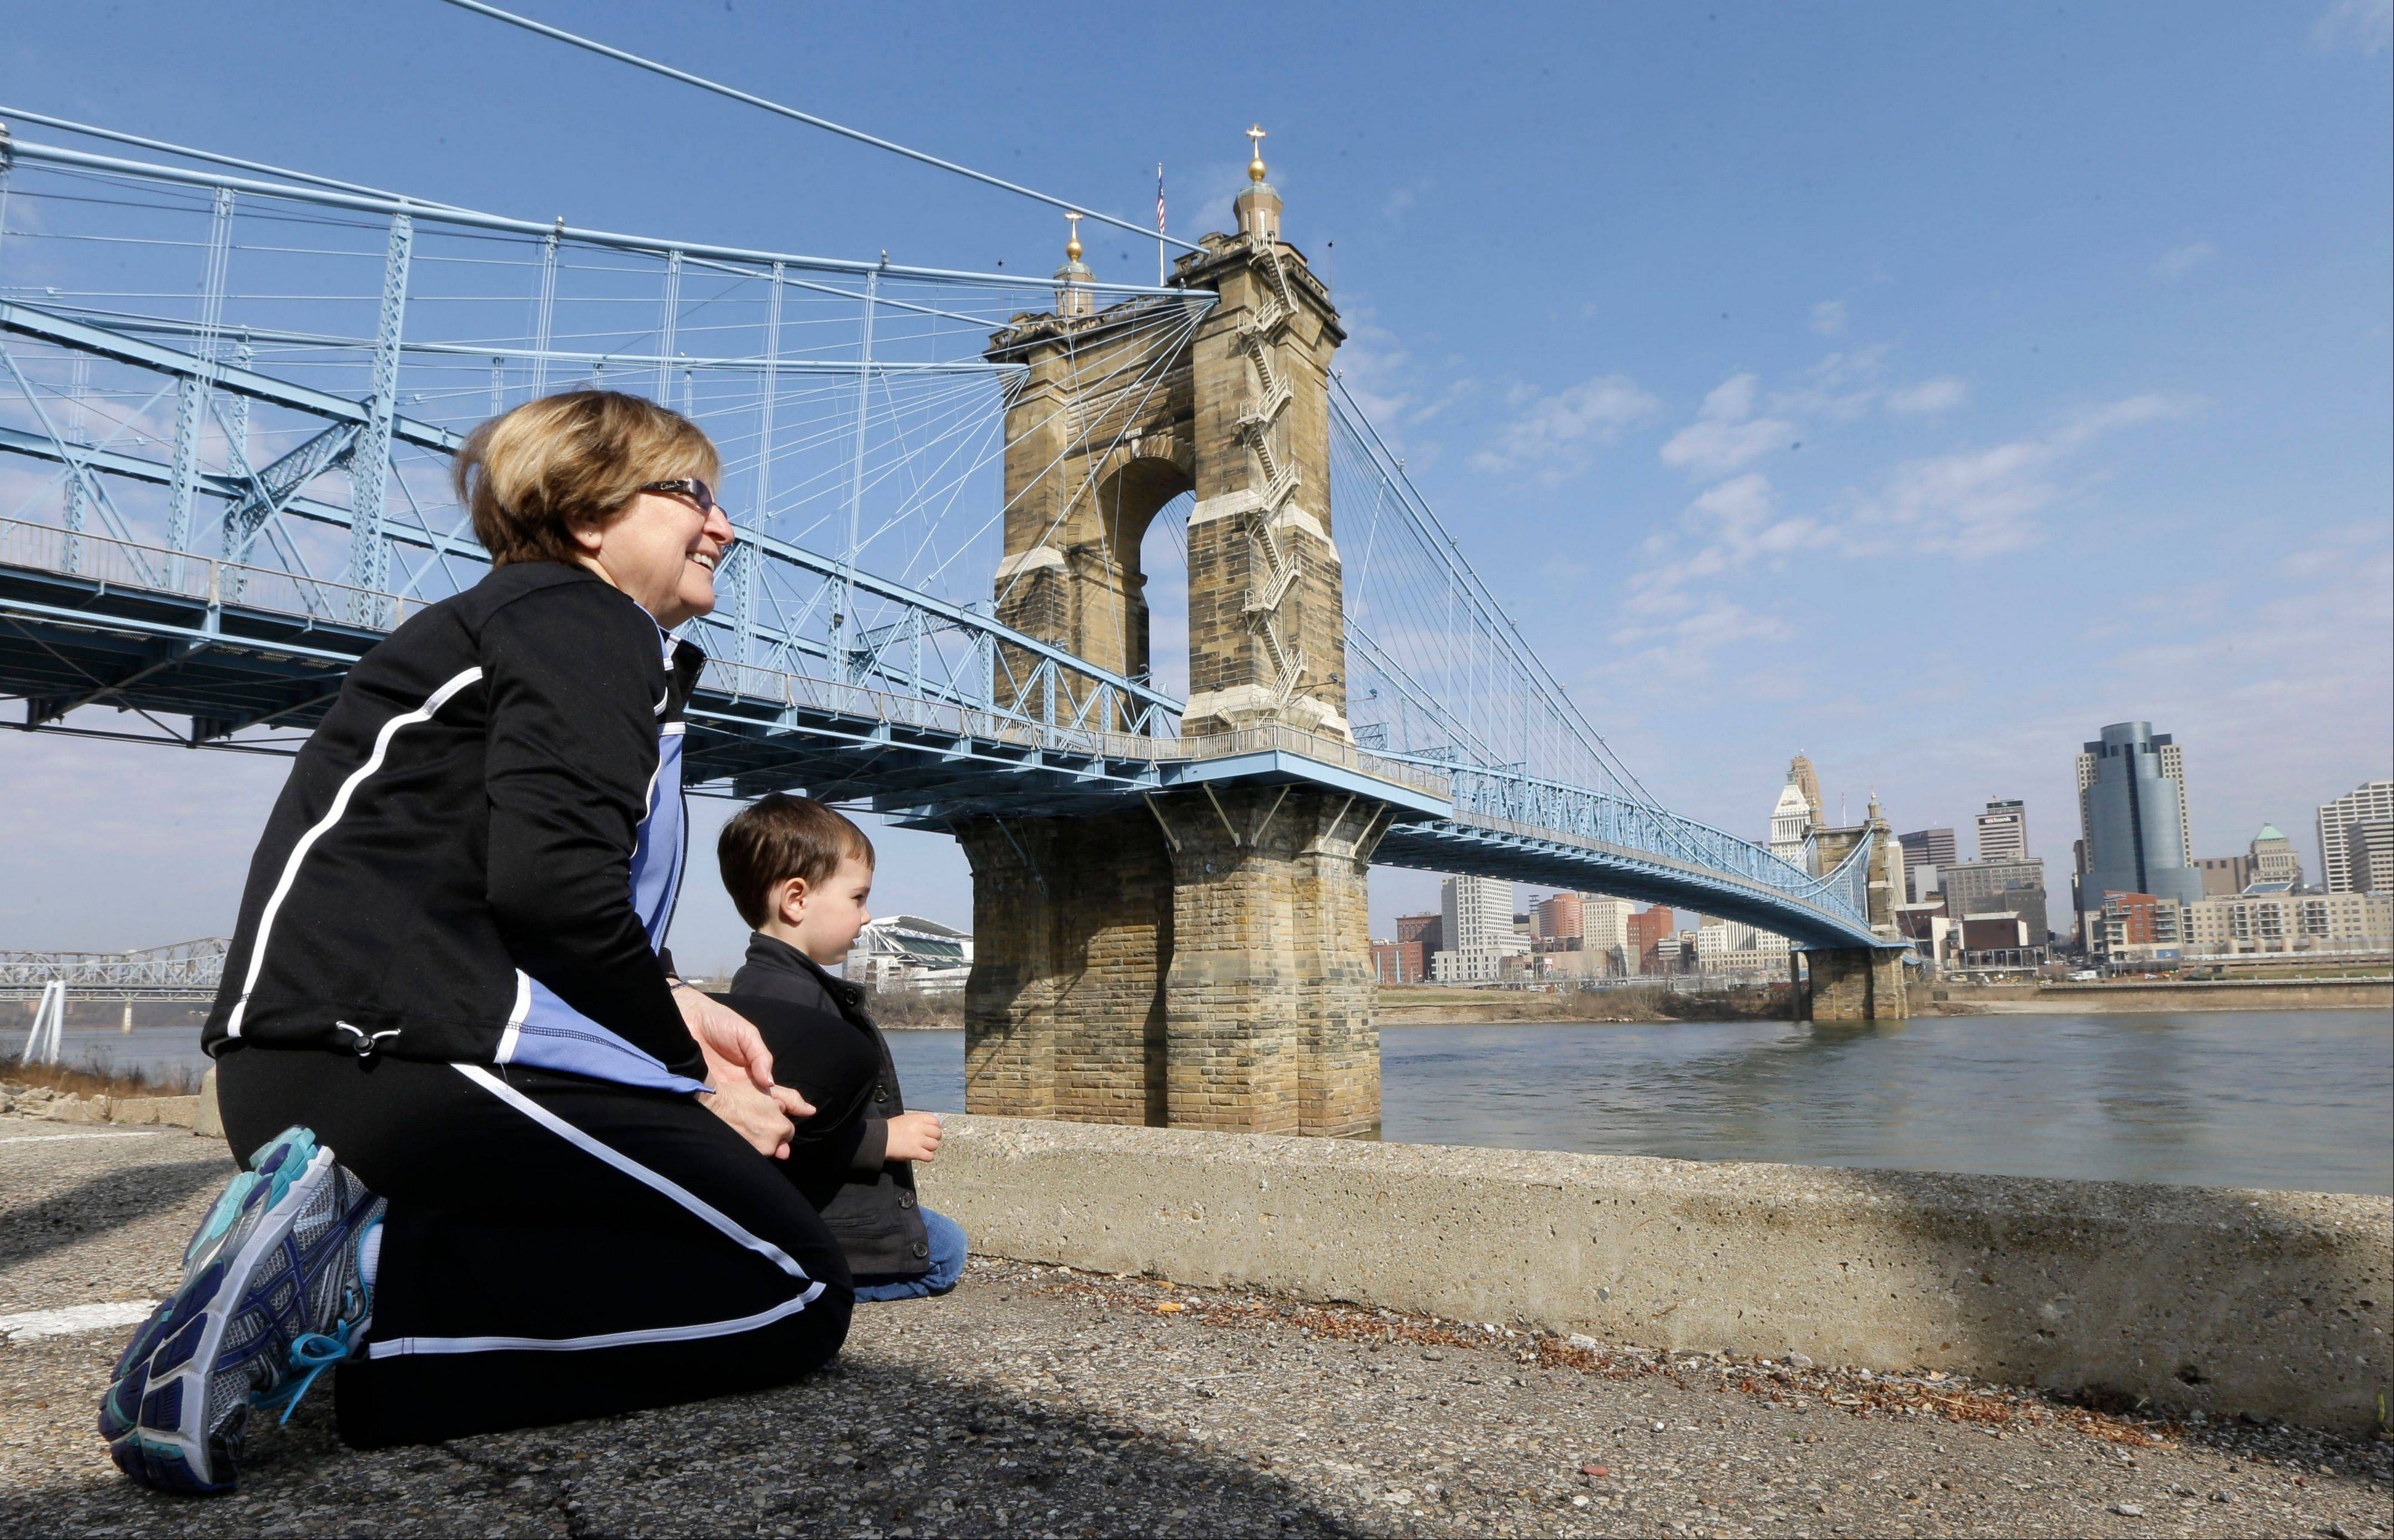 Yvonne Parmley kneels with her grandson, Finley MacKay, as they look toward downtown Cincinnati next to the Roebling Suspension Bridge over the Ohio River in Covington, Ky.